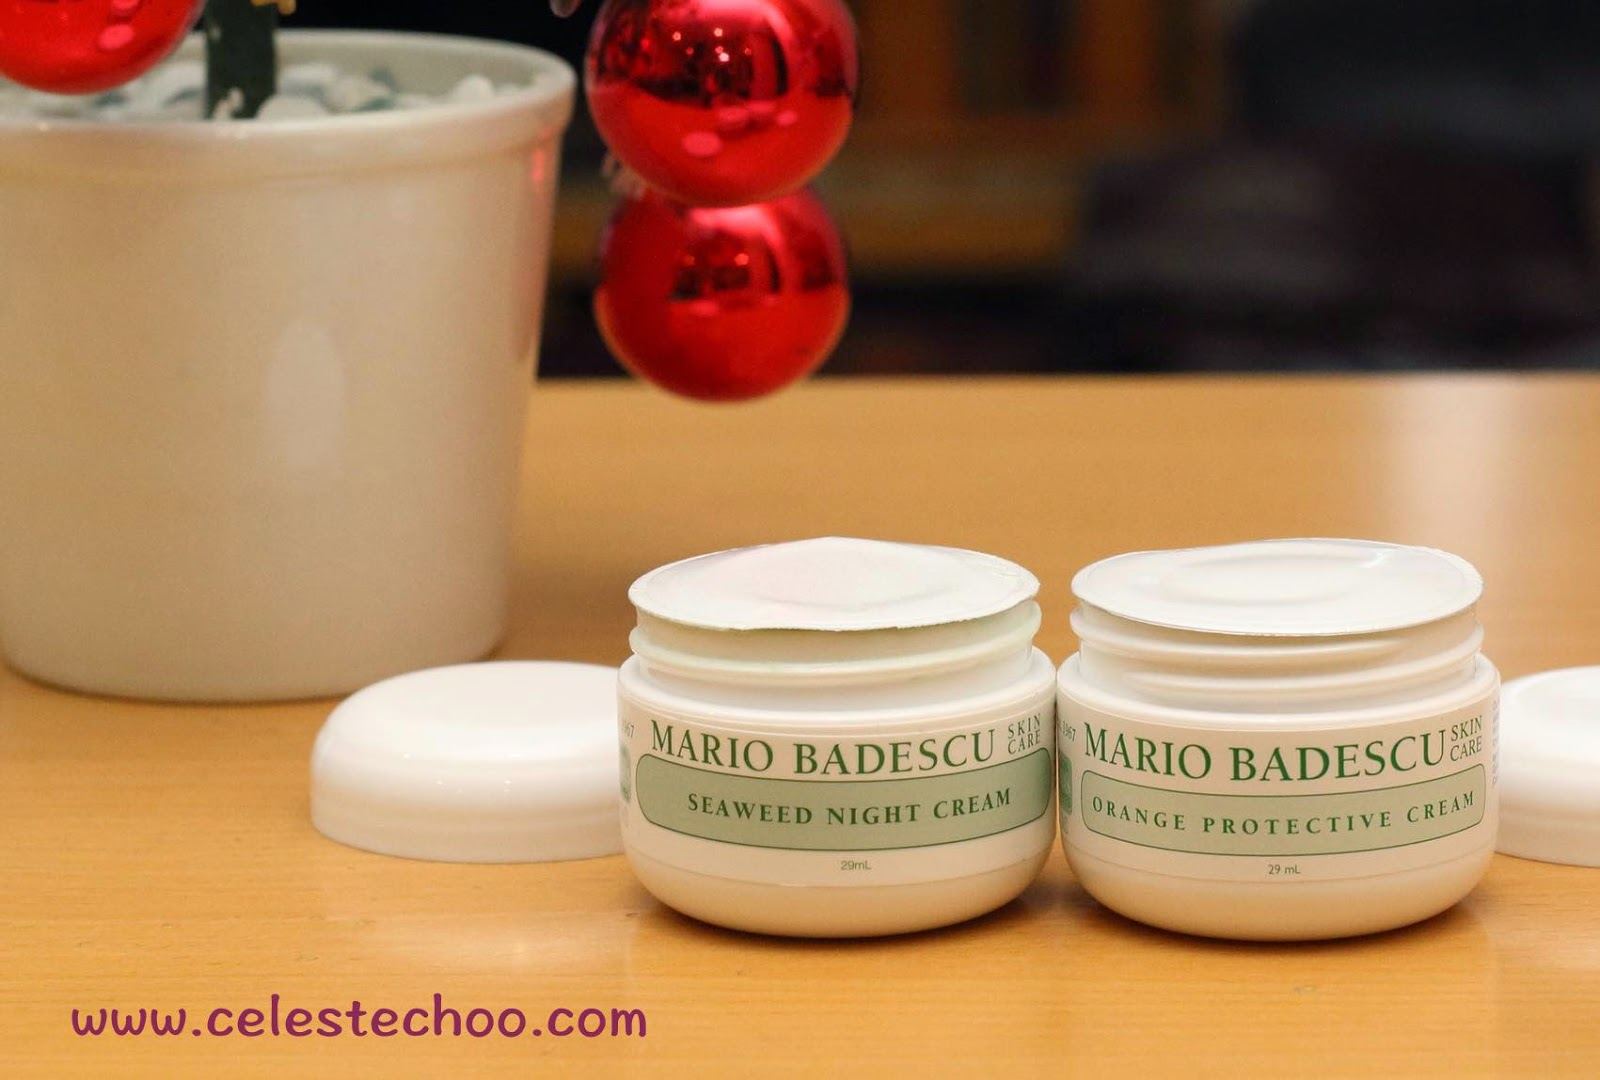 mario-badescu-skin-care-night-cream-product-review